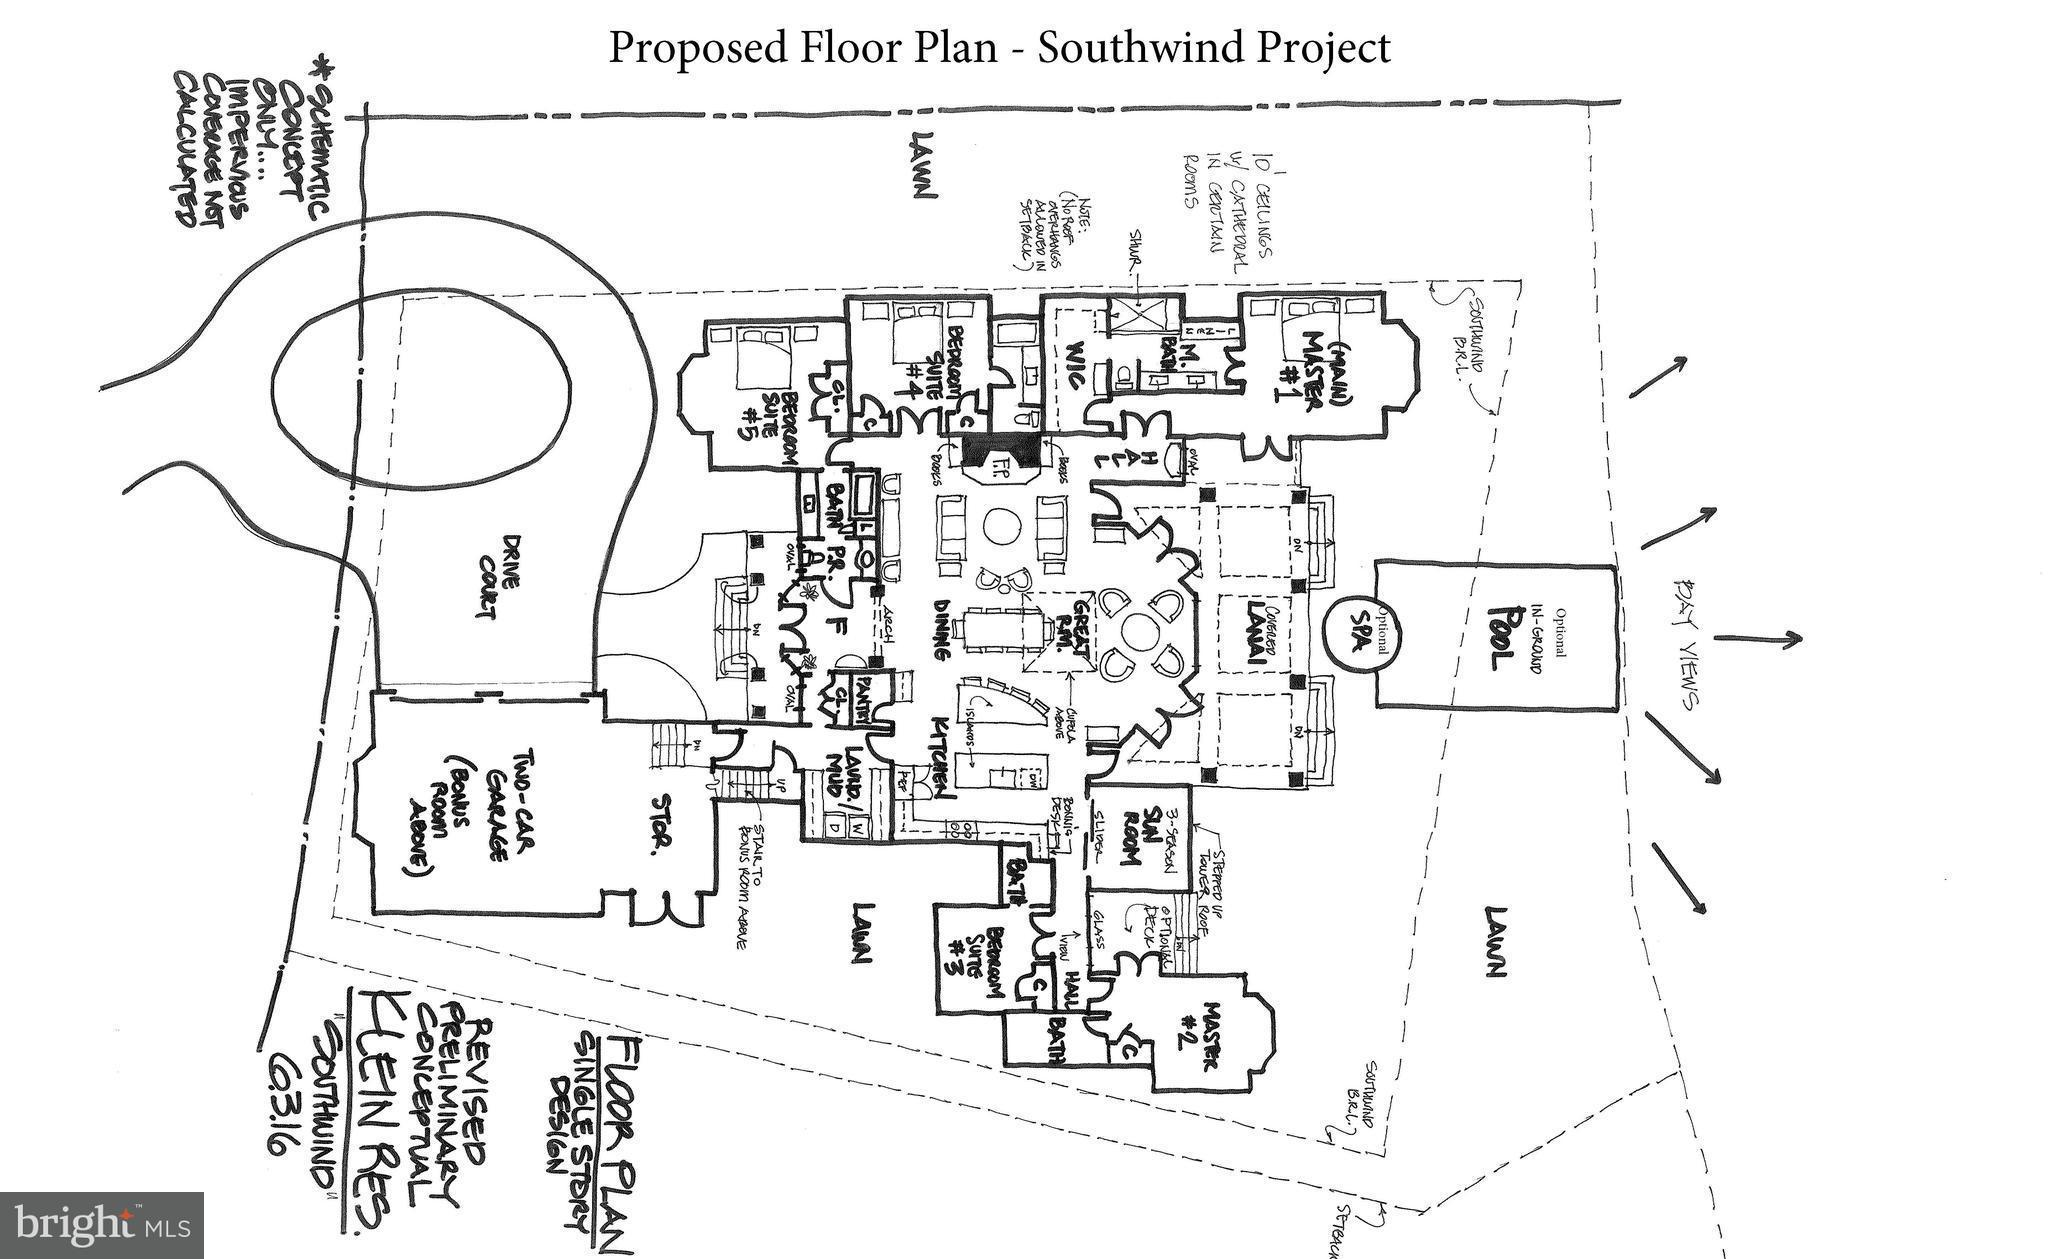 2923 Cox Neck Rd E Chester Md 21619 1850000 Cupola Schematic Gorgeous To Be Built Zero Energy Waterfront Home On Crab Alley Bay Green Aspects Include Geothermal Solar Panels Star Appl